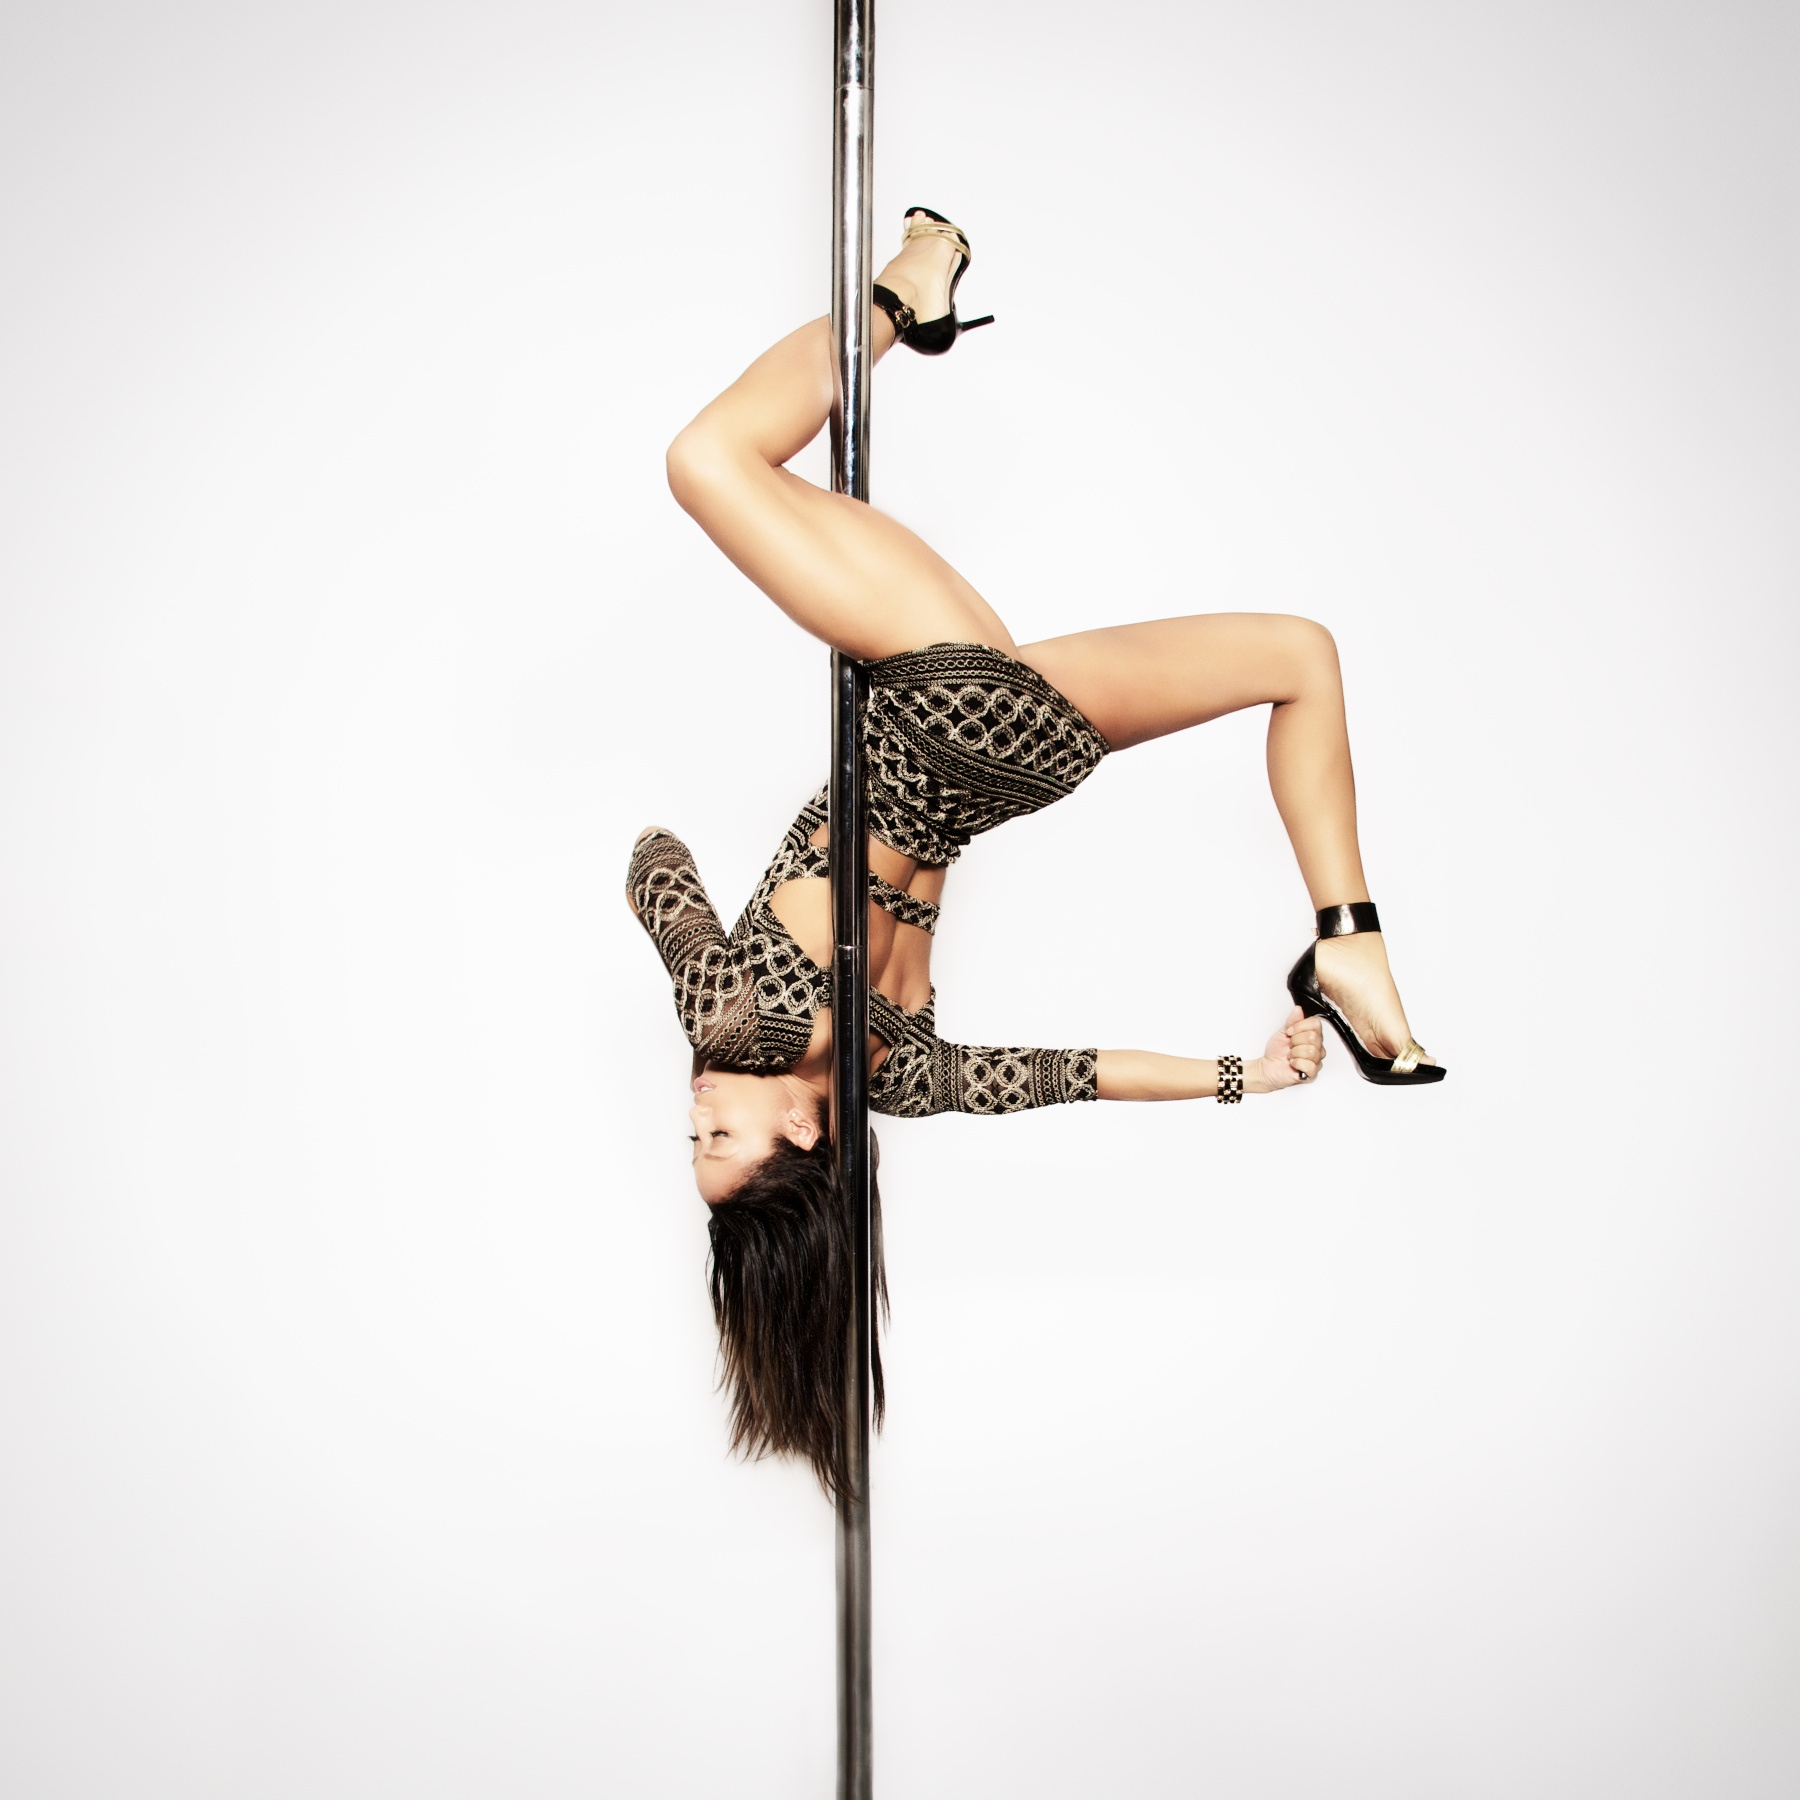 Nicole ThePole in inside leg hang